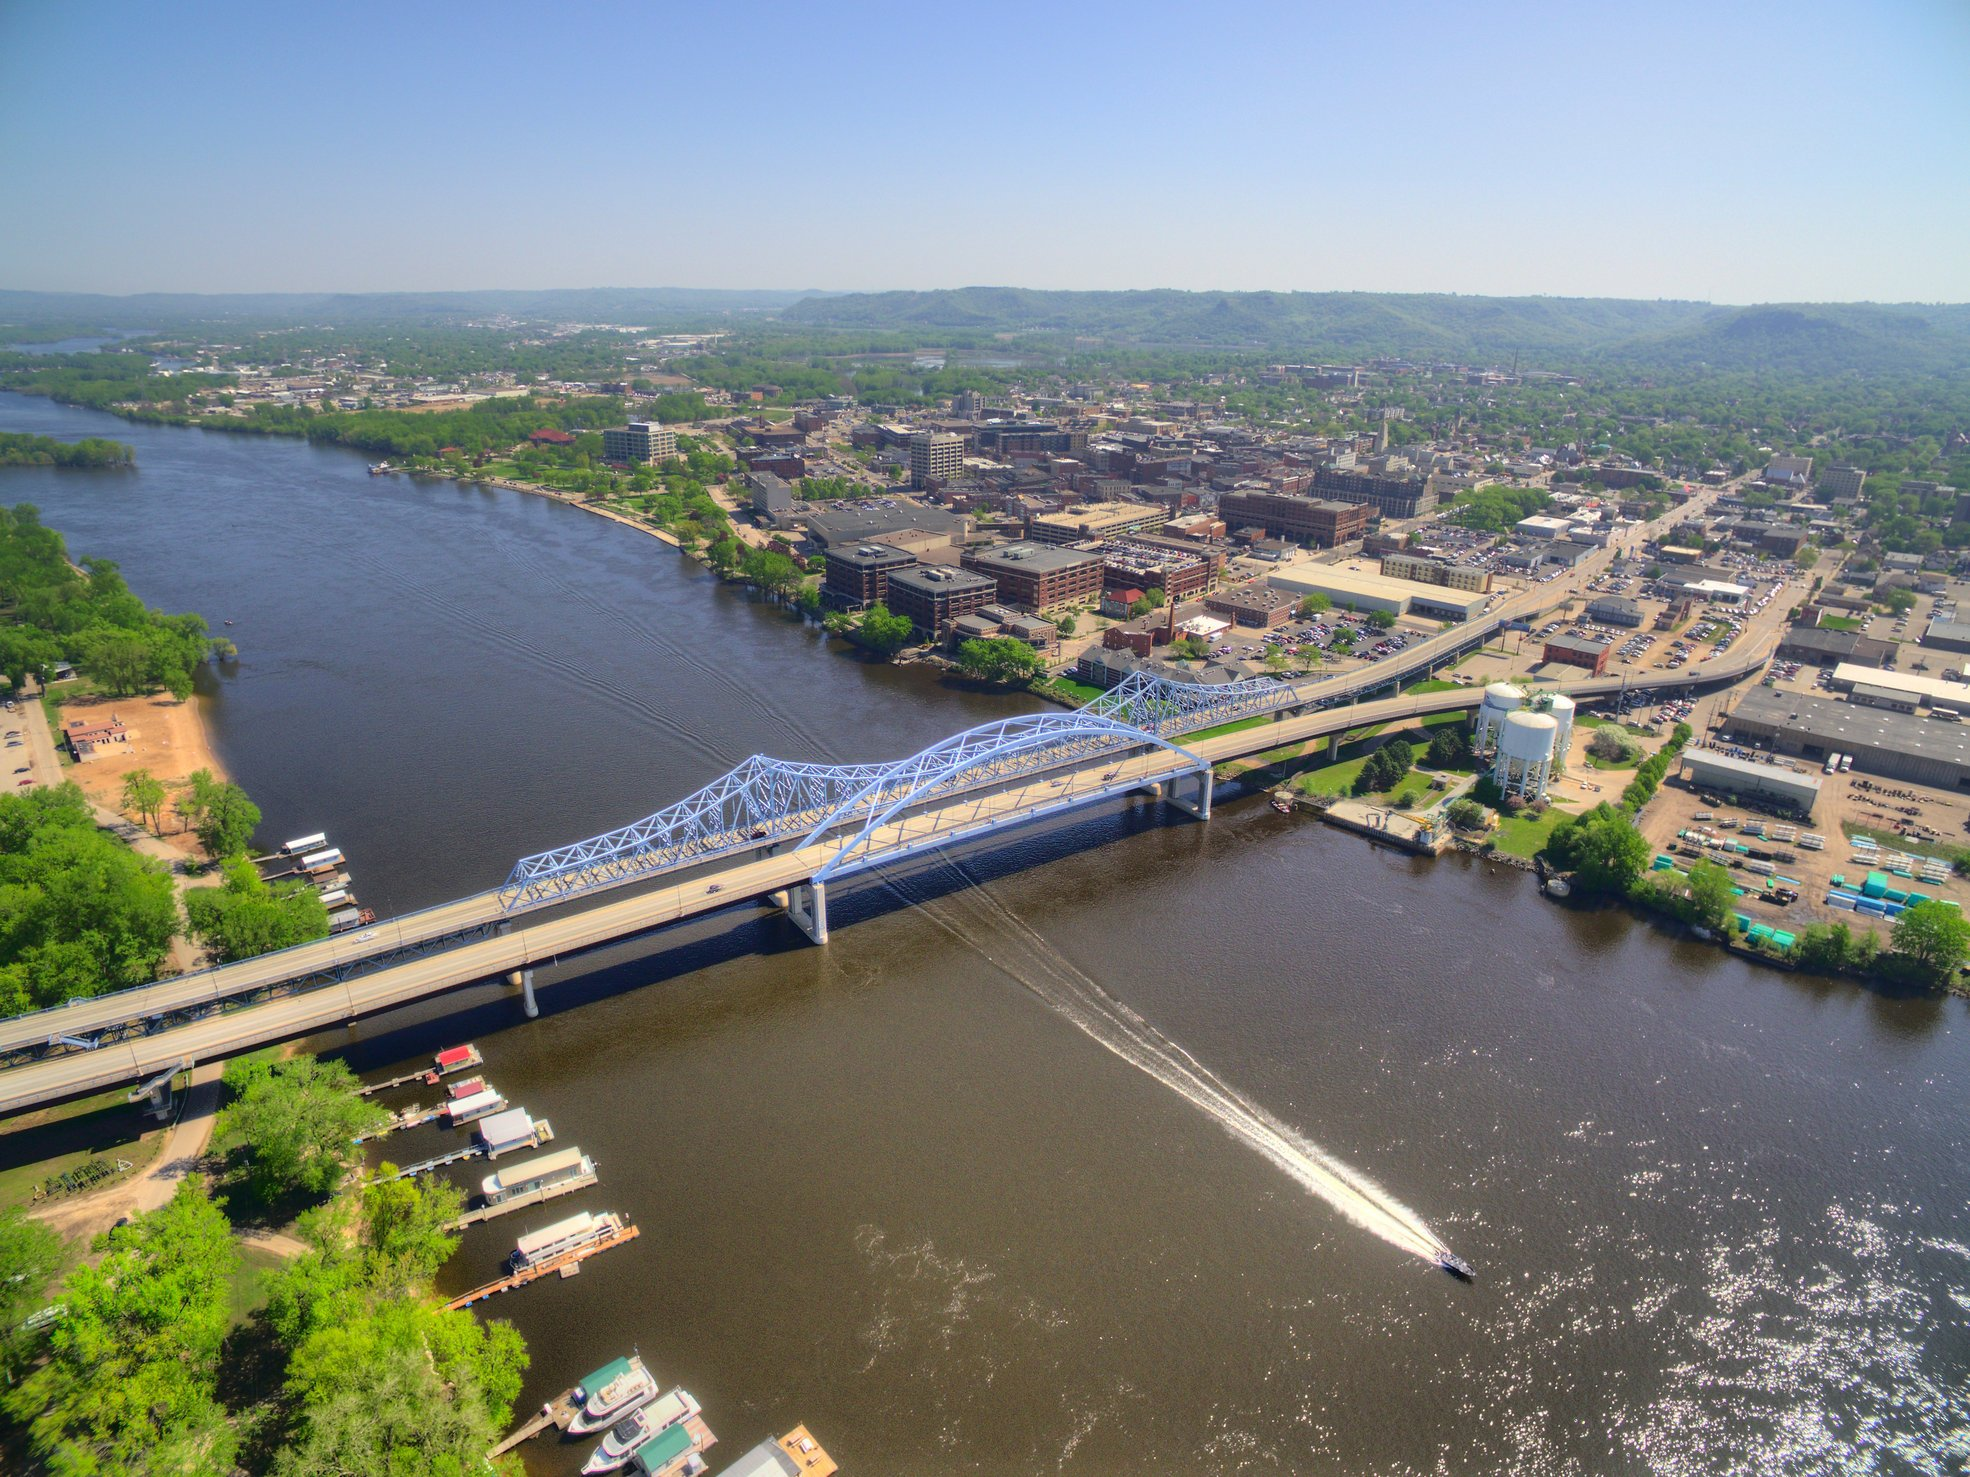 An aerial view over the bridge on the Upper Mississippi River in La Crosse, one of the best fishing spots in Wisconsin